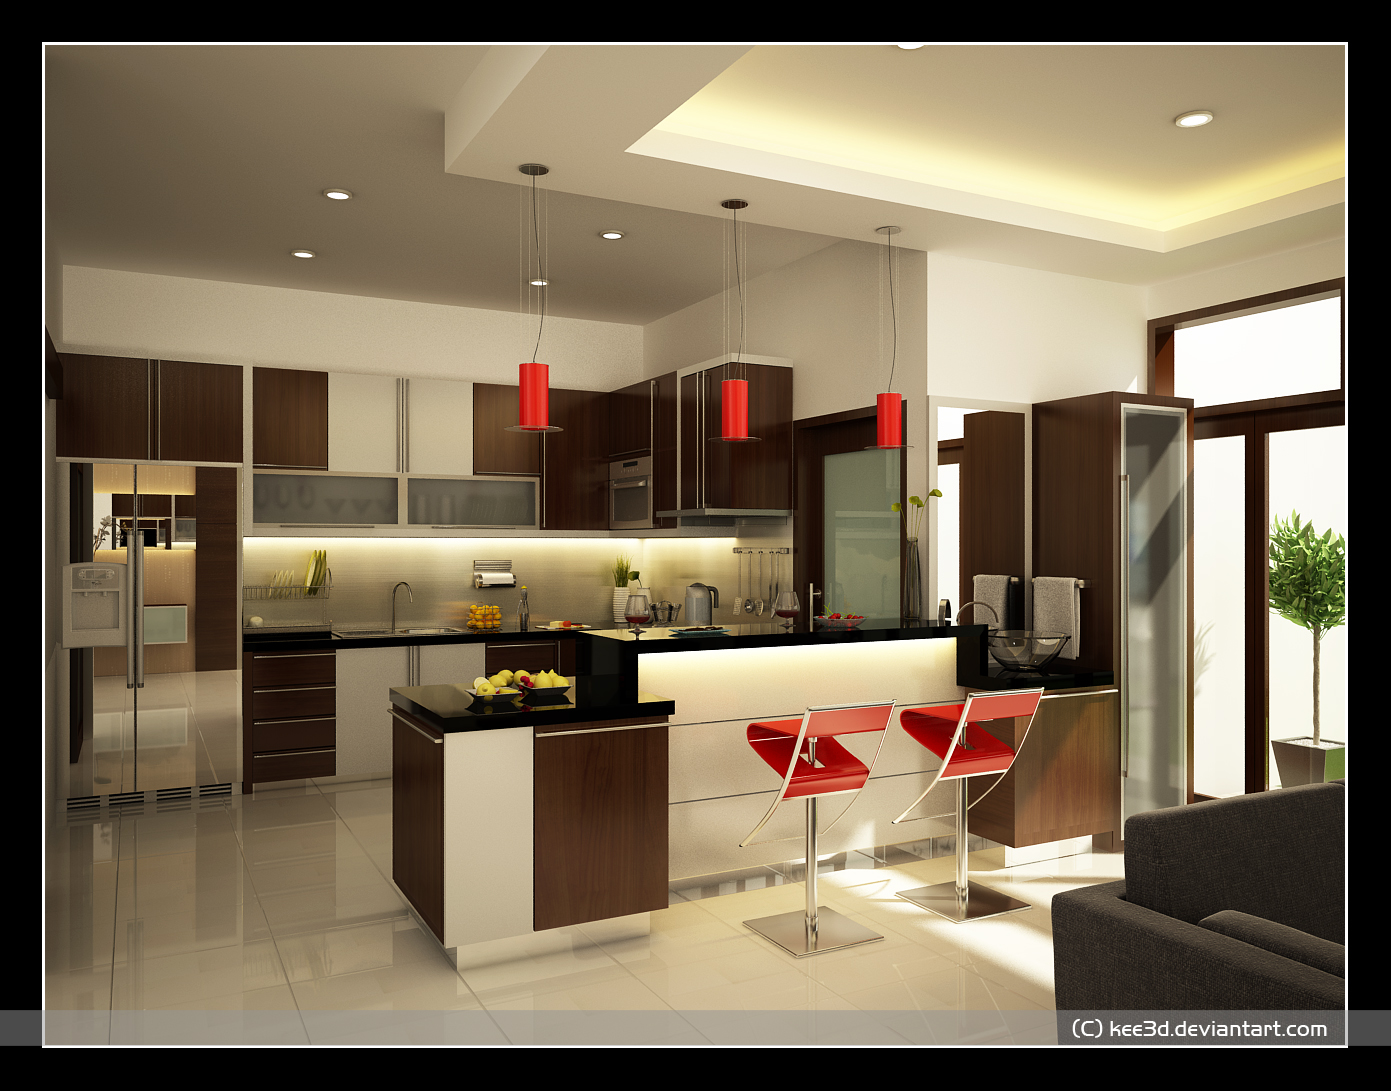 Kitchen design ideas Home improvement ideas kitchen